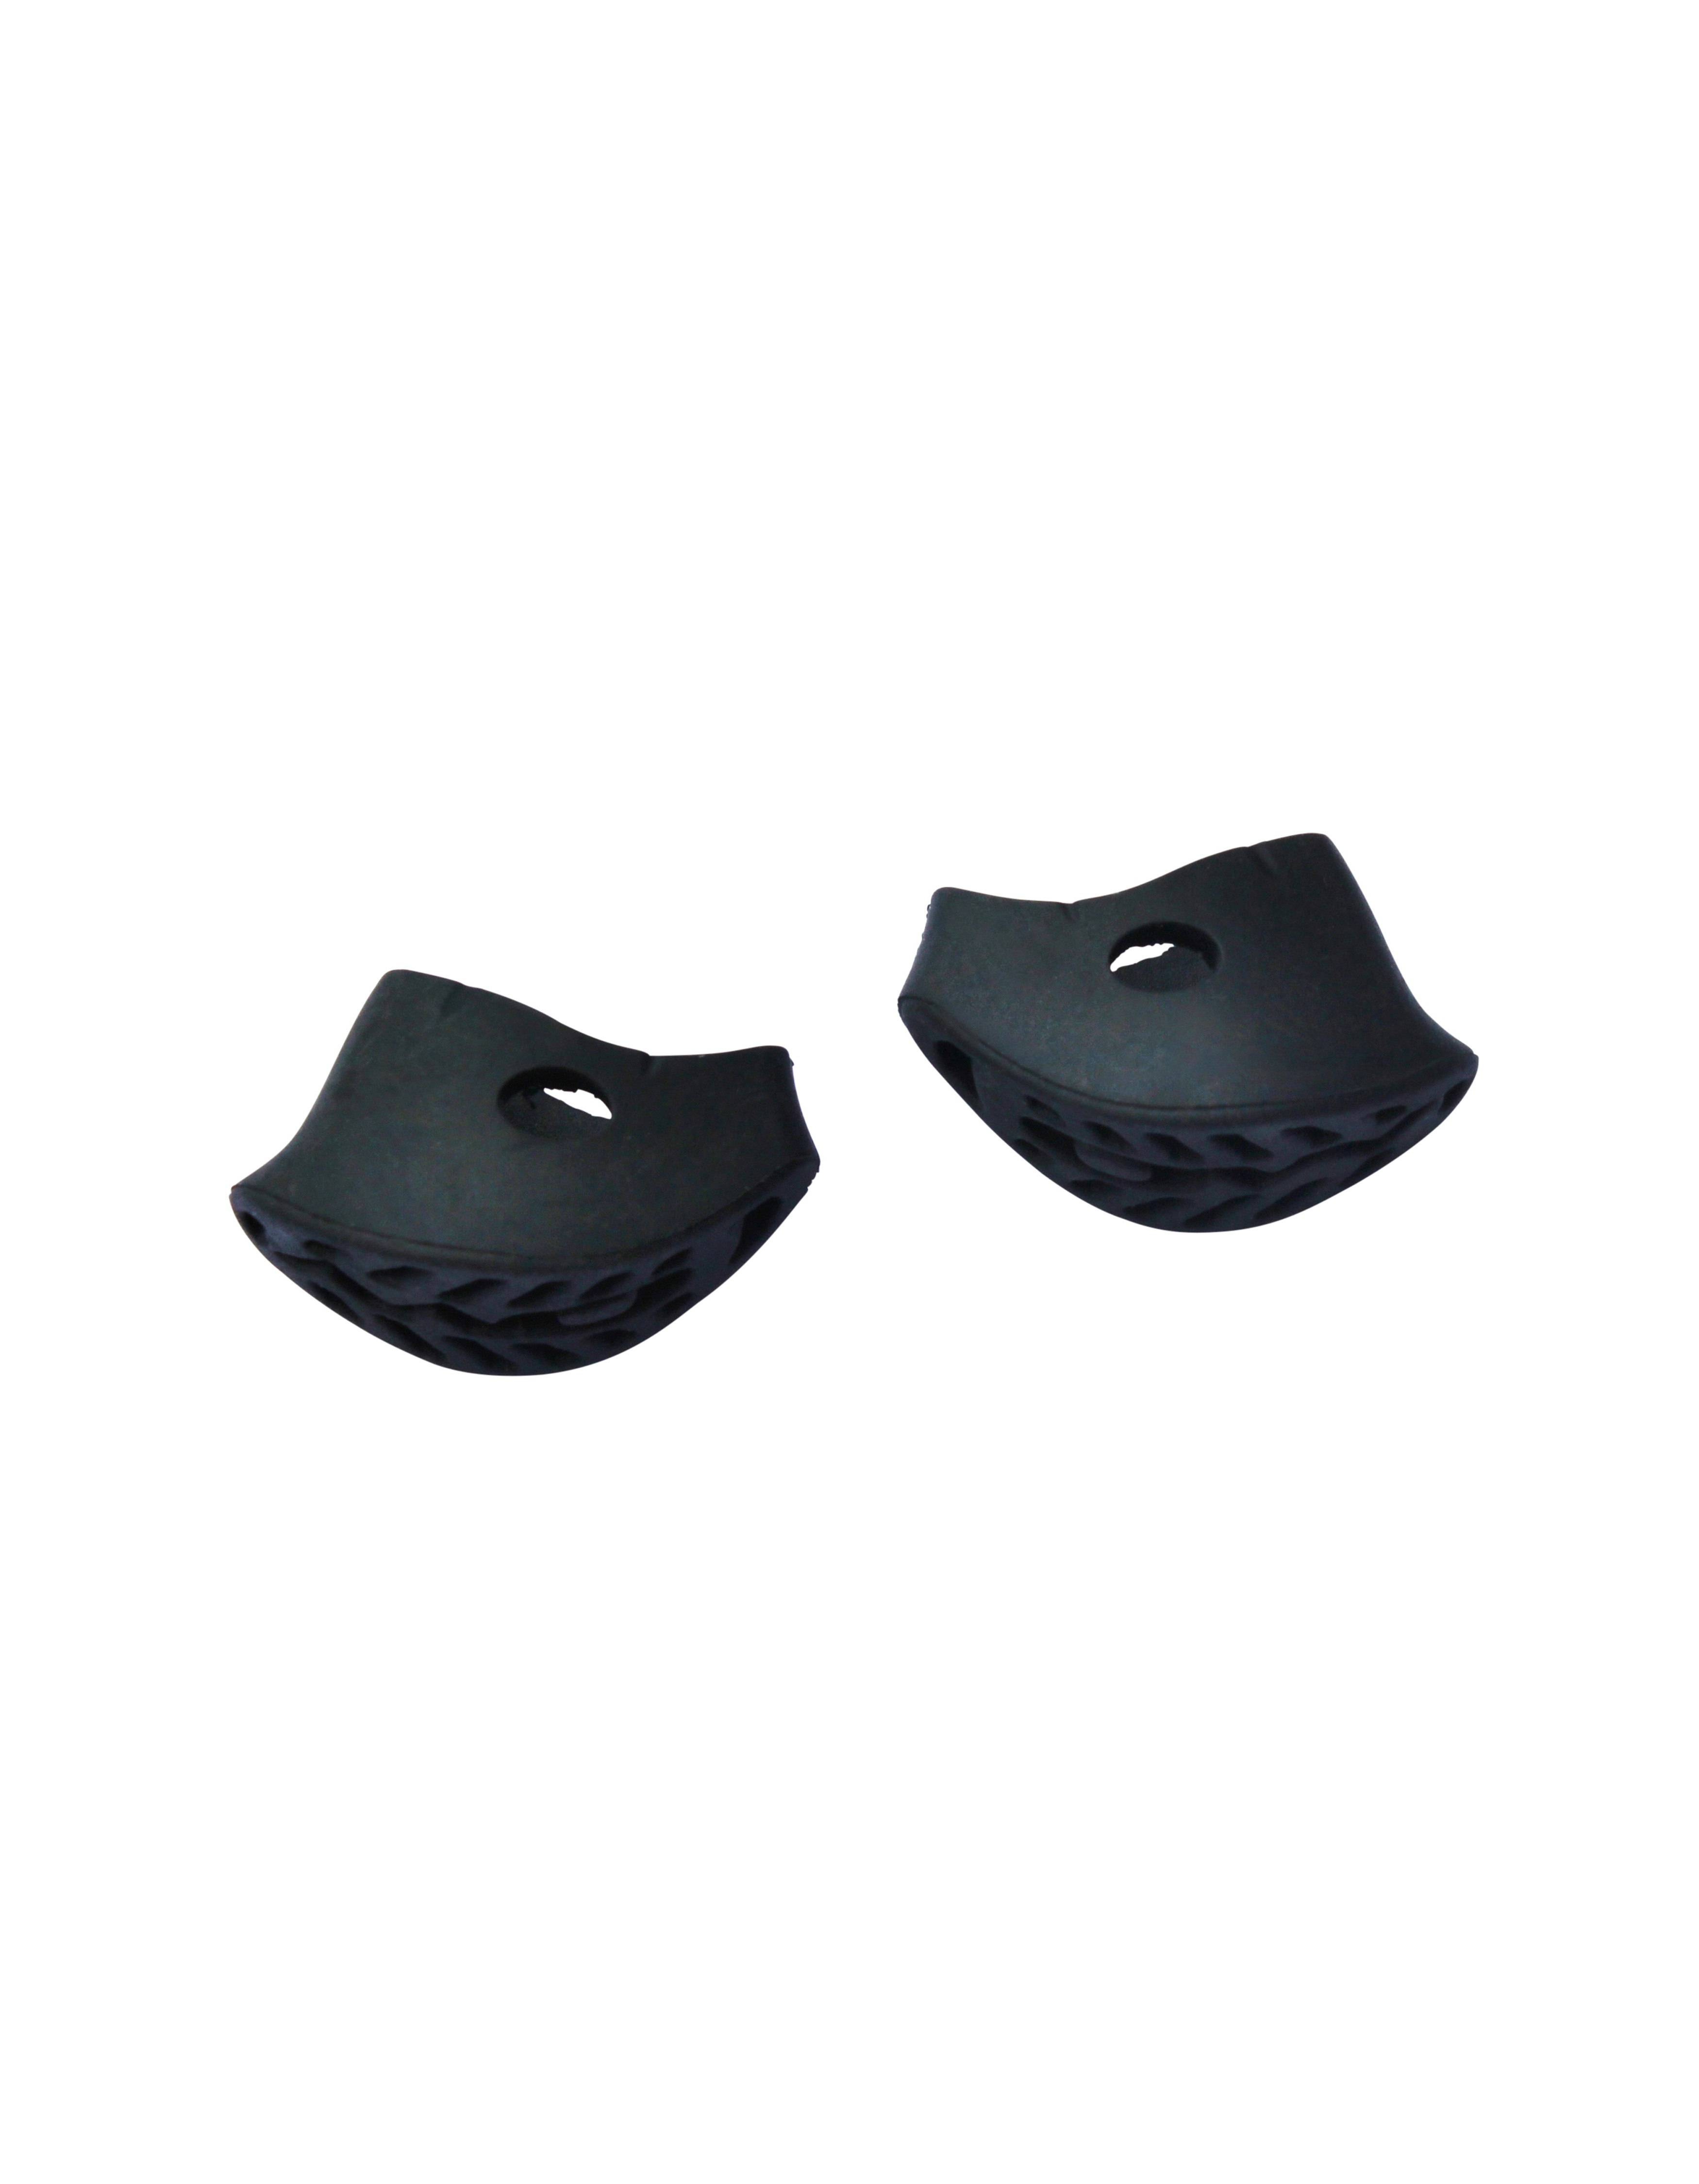 ONE WAY Duotec Rubber Pads, Pair